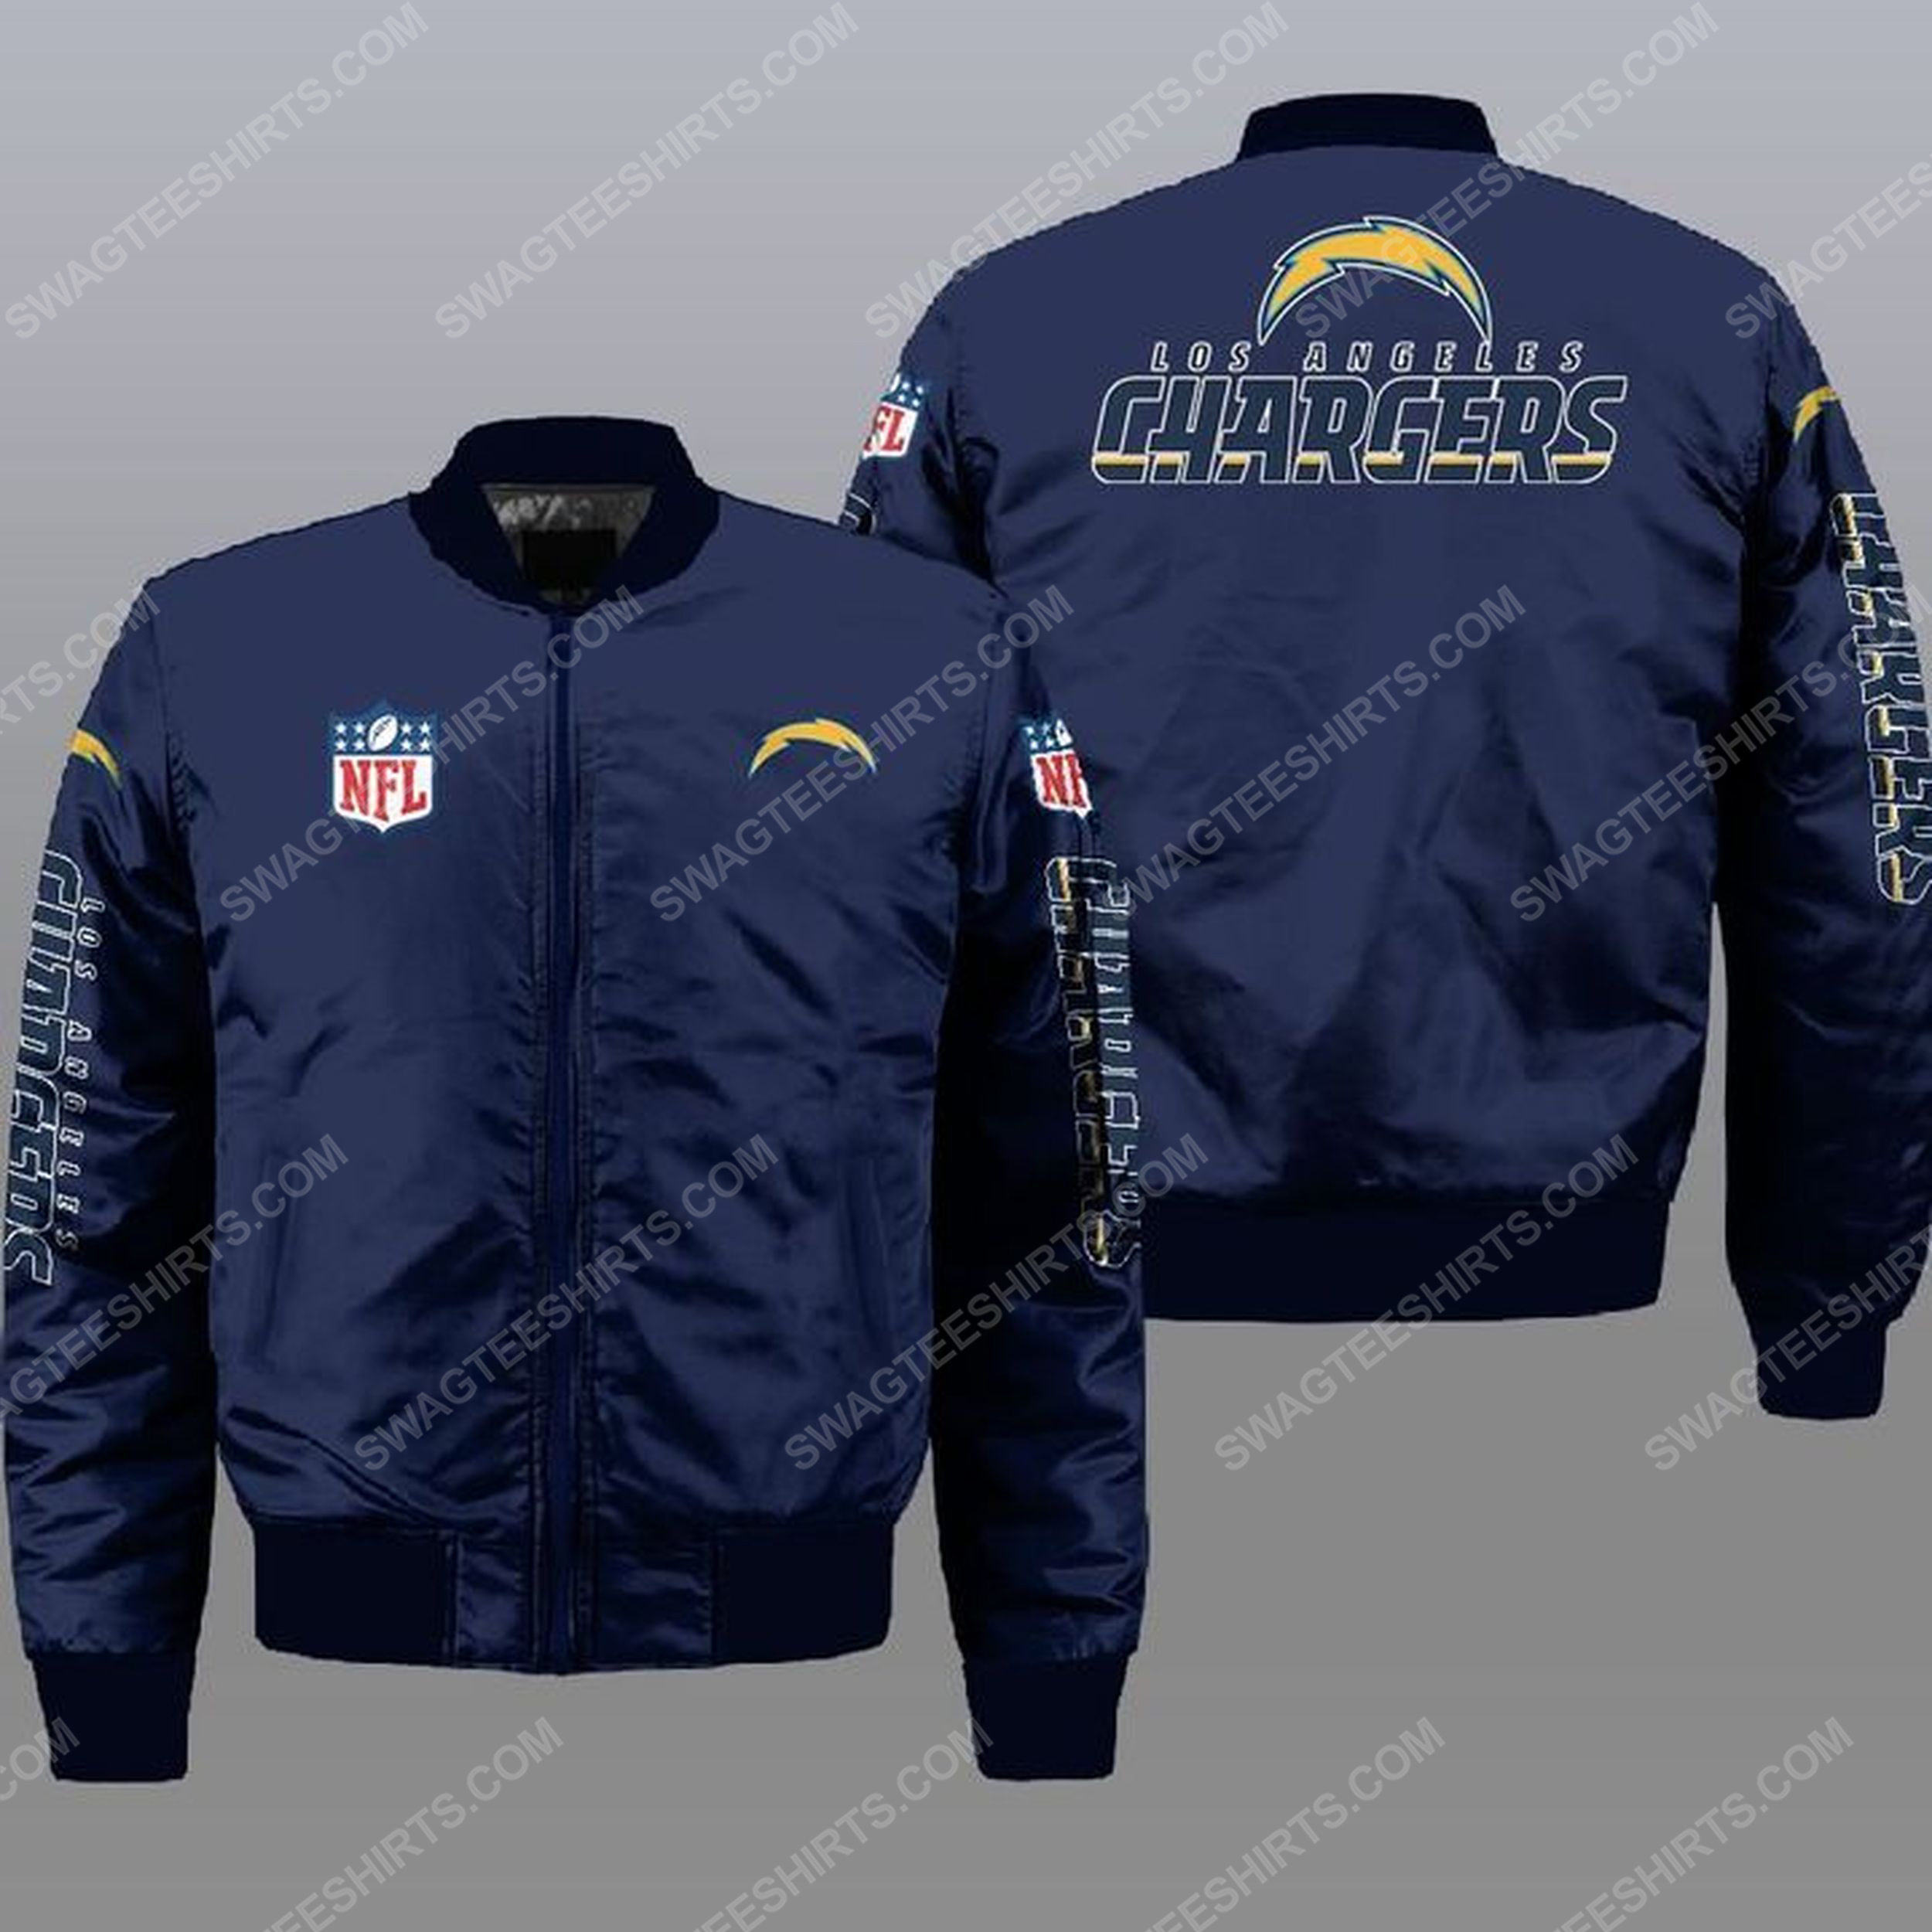 The los angeles chargers nfl all over print bomber jacket -navy 1